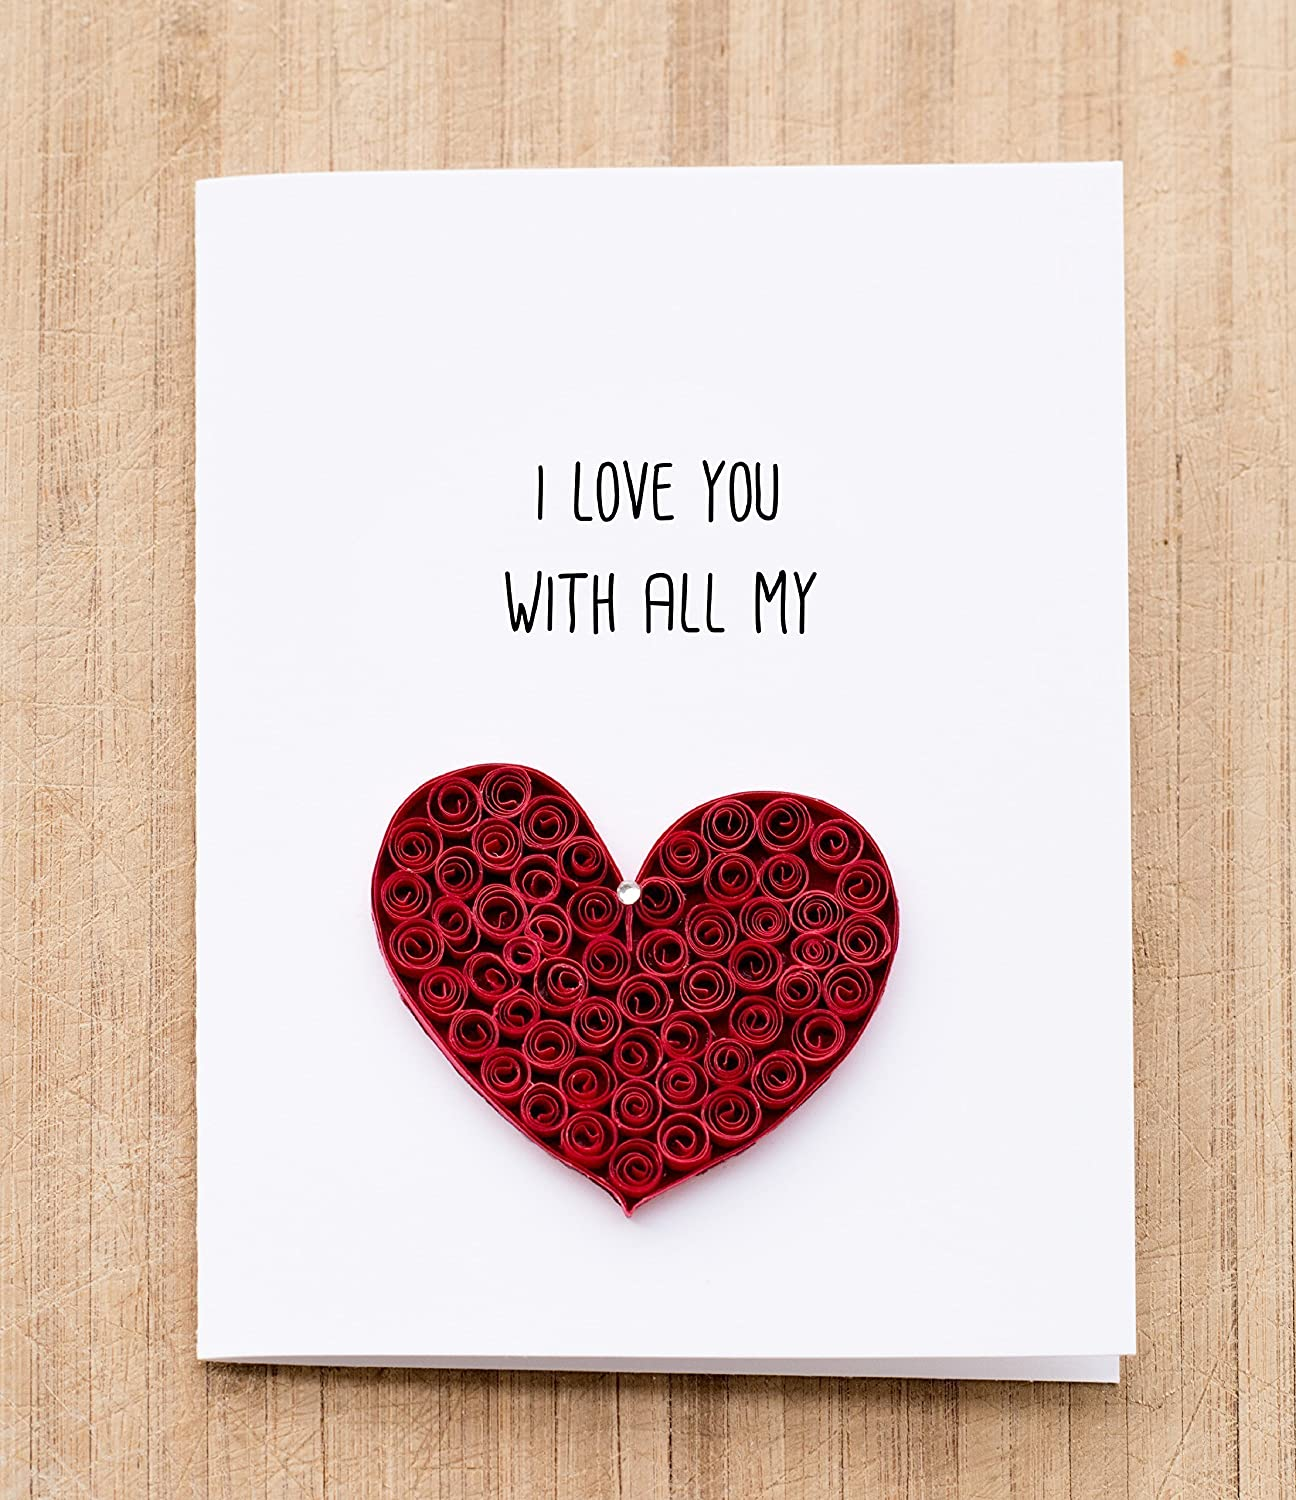 Amazon i love you card anniversary card for husband amazon i love you card anniversary card for husband boyfriend wife girlfriend handmade greeting card handmade kristyandbryce Image collections